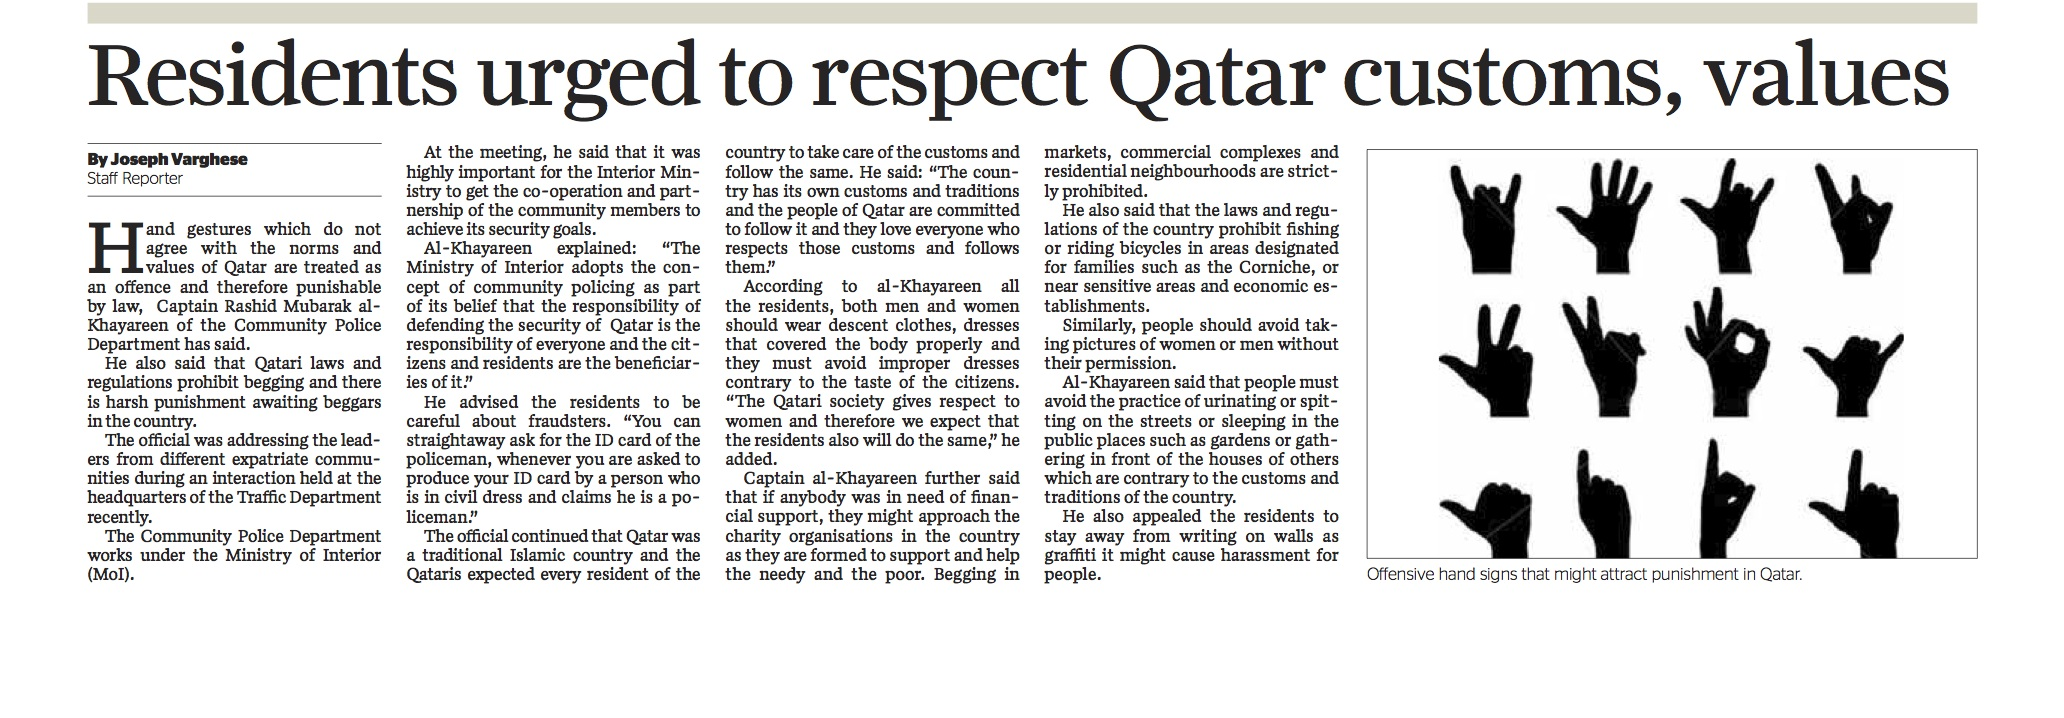 "A harsh reminder that I'm not as culturally-savvy as I thought I was.  A wise woman once told me, ""You've got to learn to admit that you simply don't know what you don't know."" ...   (article extracted from July 12, 2013 Gulf Times, at http://www.gulf-times.com/qatar/178/details/359198/residents-urged-to-respect-qatar-customs%2c-values)"